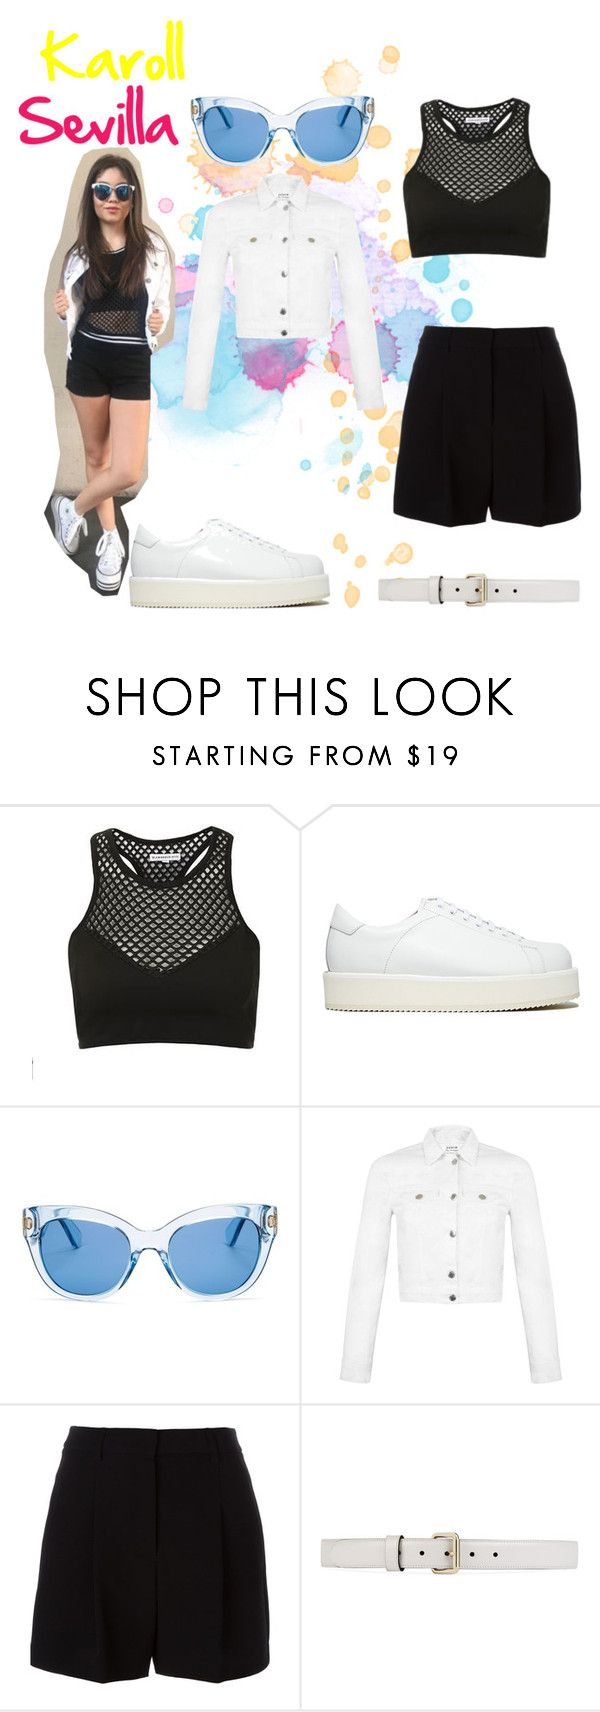 """karol sevilla"" by maria-look on Polyvore featuring Topshop, SILENT by Damir Doma, Kate Spade, Miss Selfridge, DKNY and Gucci"